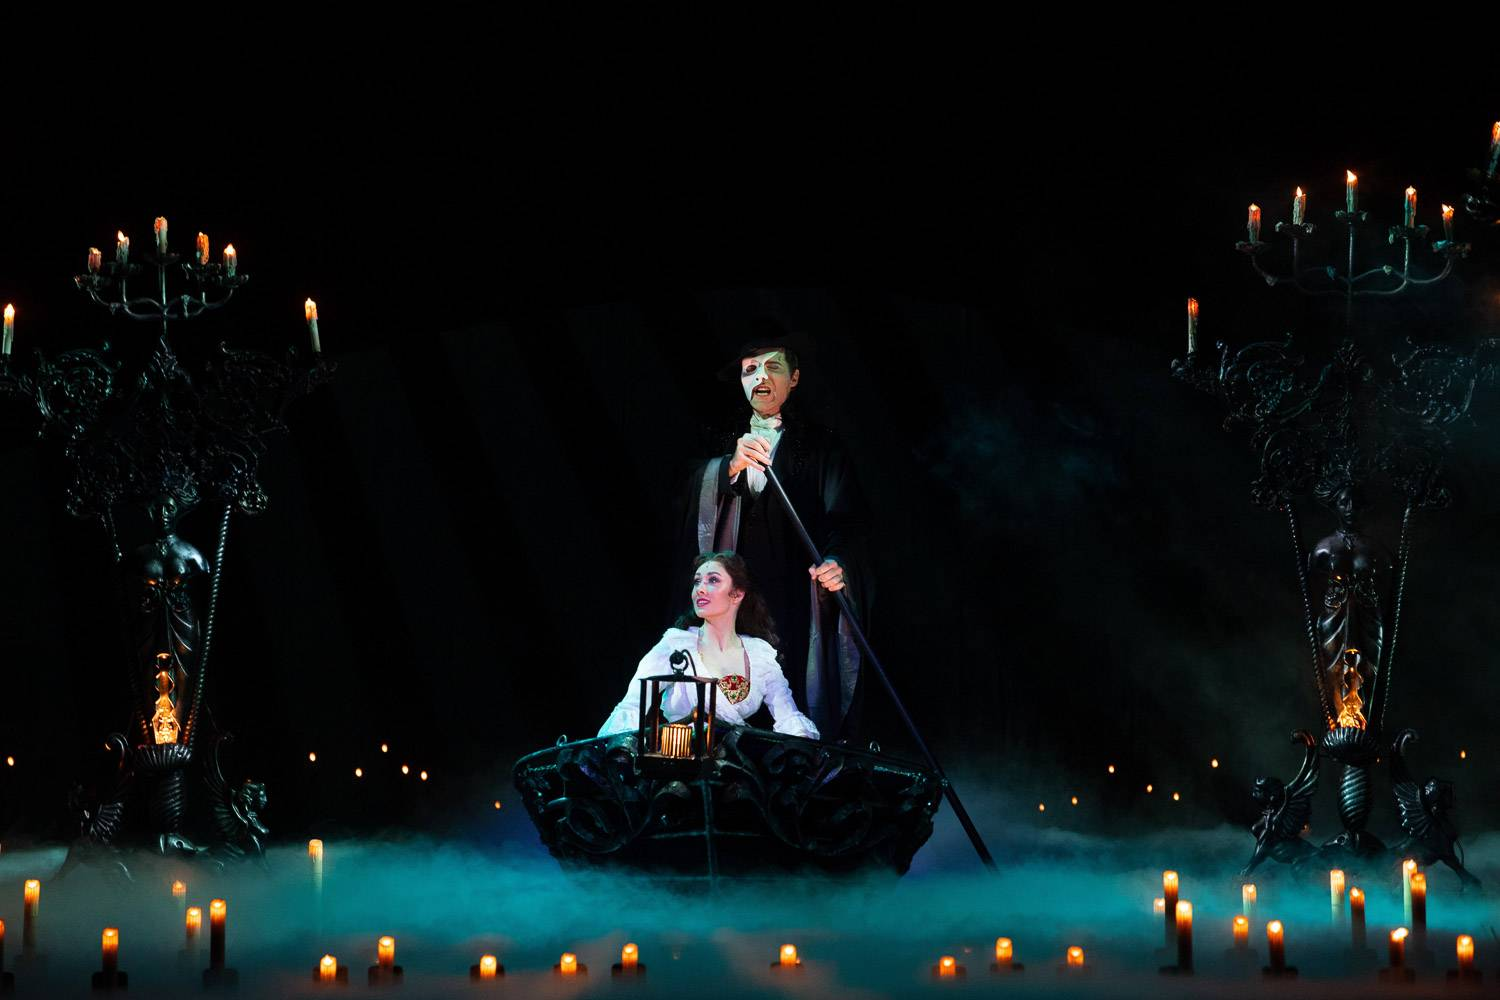 Image from Phantom of the Opera on Broadway with the main characters in a boat in the dark surrounded by candles